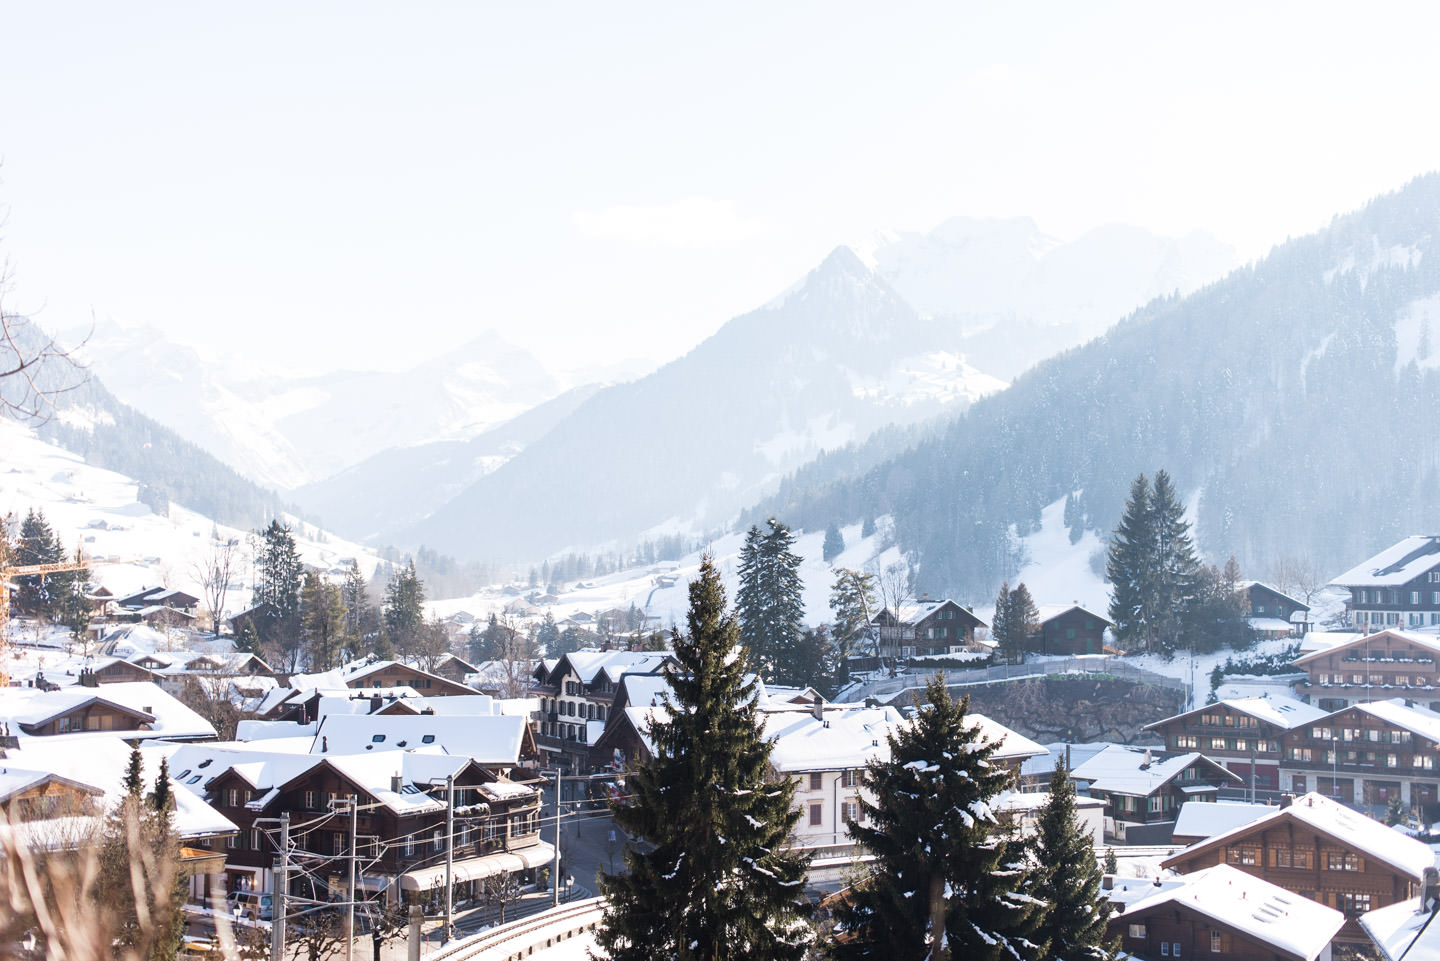 Blog-Mode-And-The-City-Lifestyle-Parenthese-Enchantee-Gstaad-Suisse-Gstaad-Palace-10